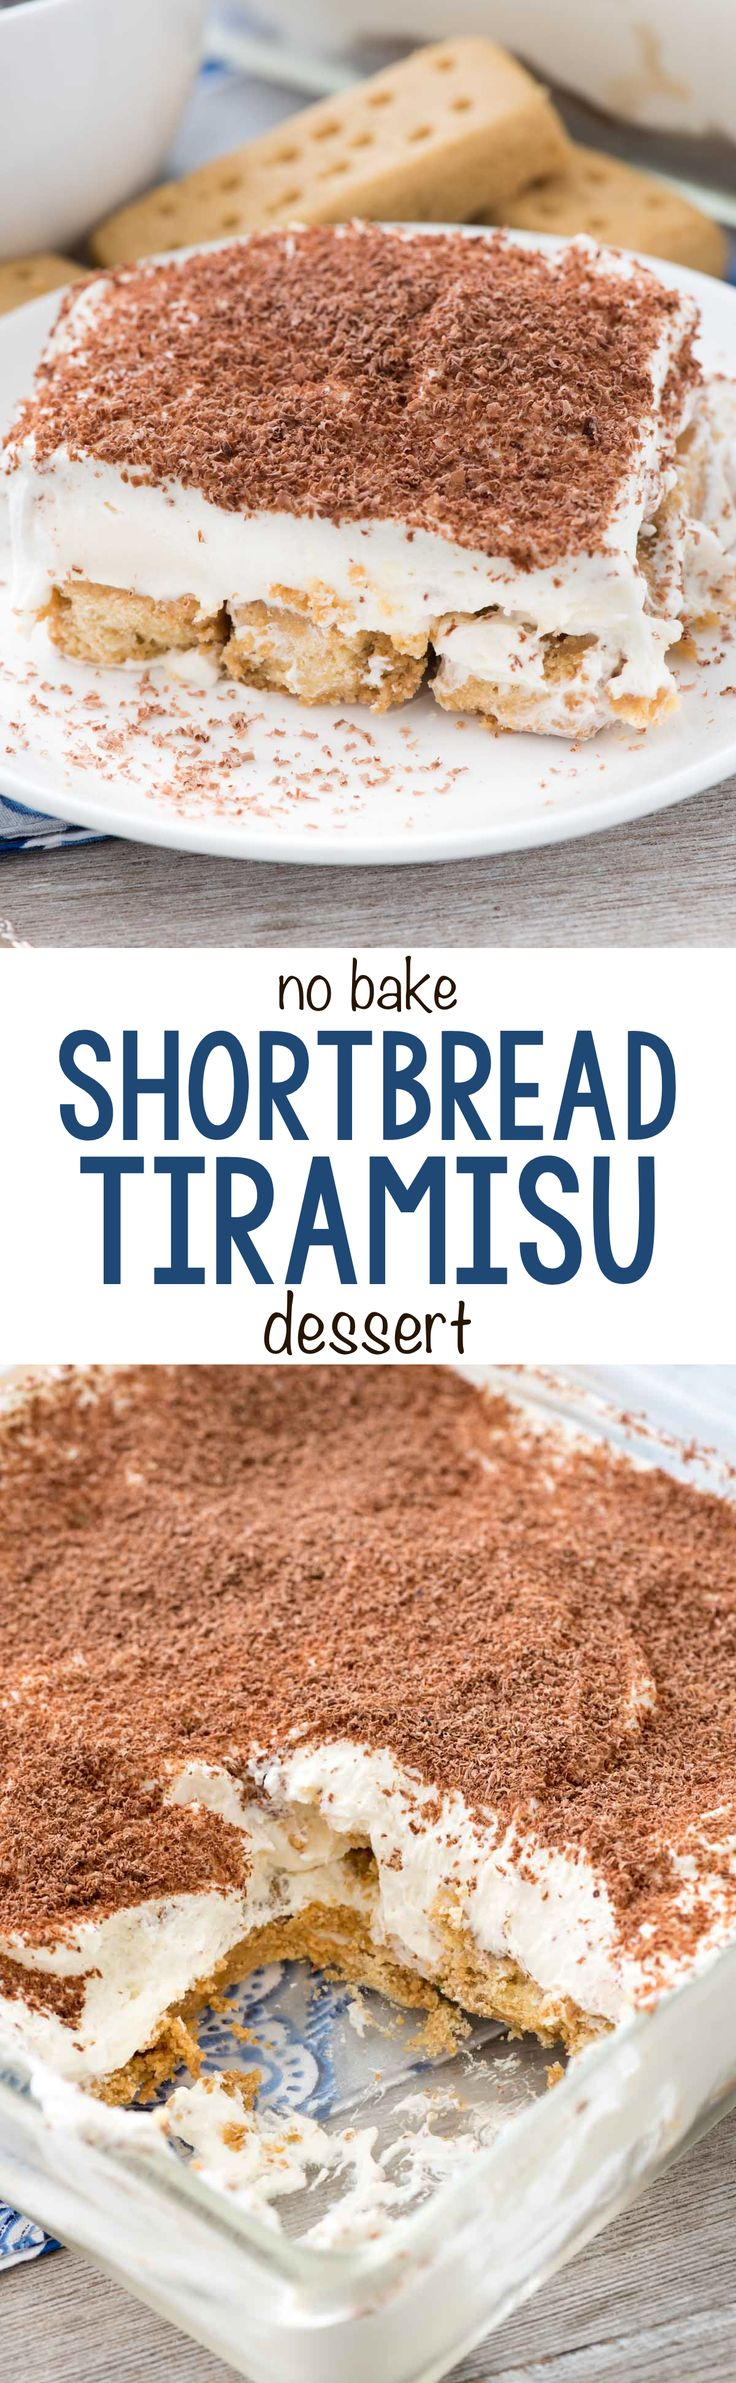 No Bake Shortbread Tiramisu Dessert - this easy no bake dessert recipe uses shortbread cookies as the base of the tiramisu! Comes together in minutes and everyone loved it!